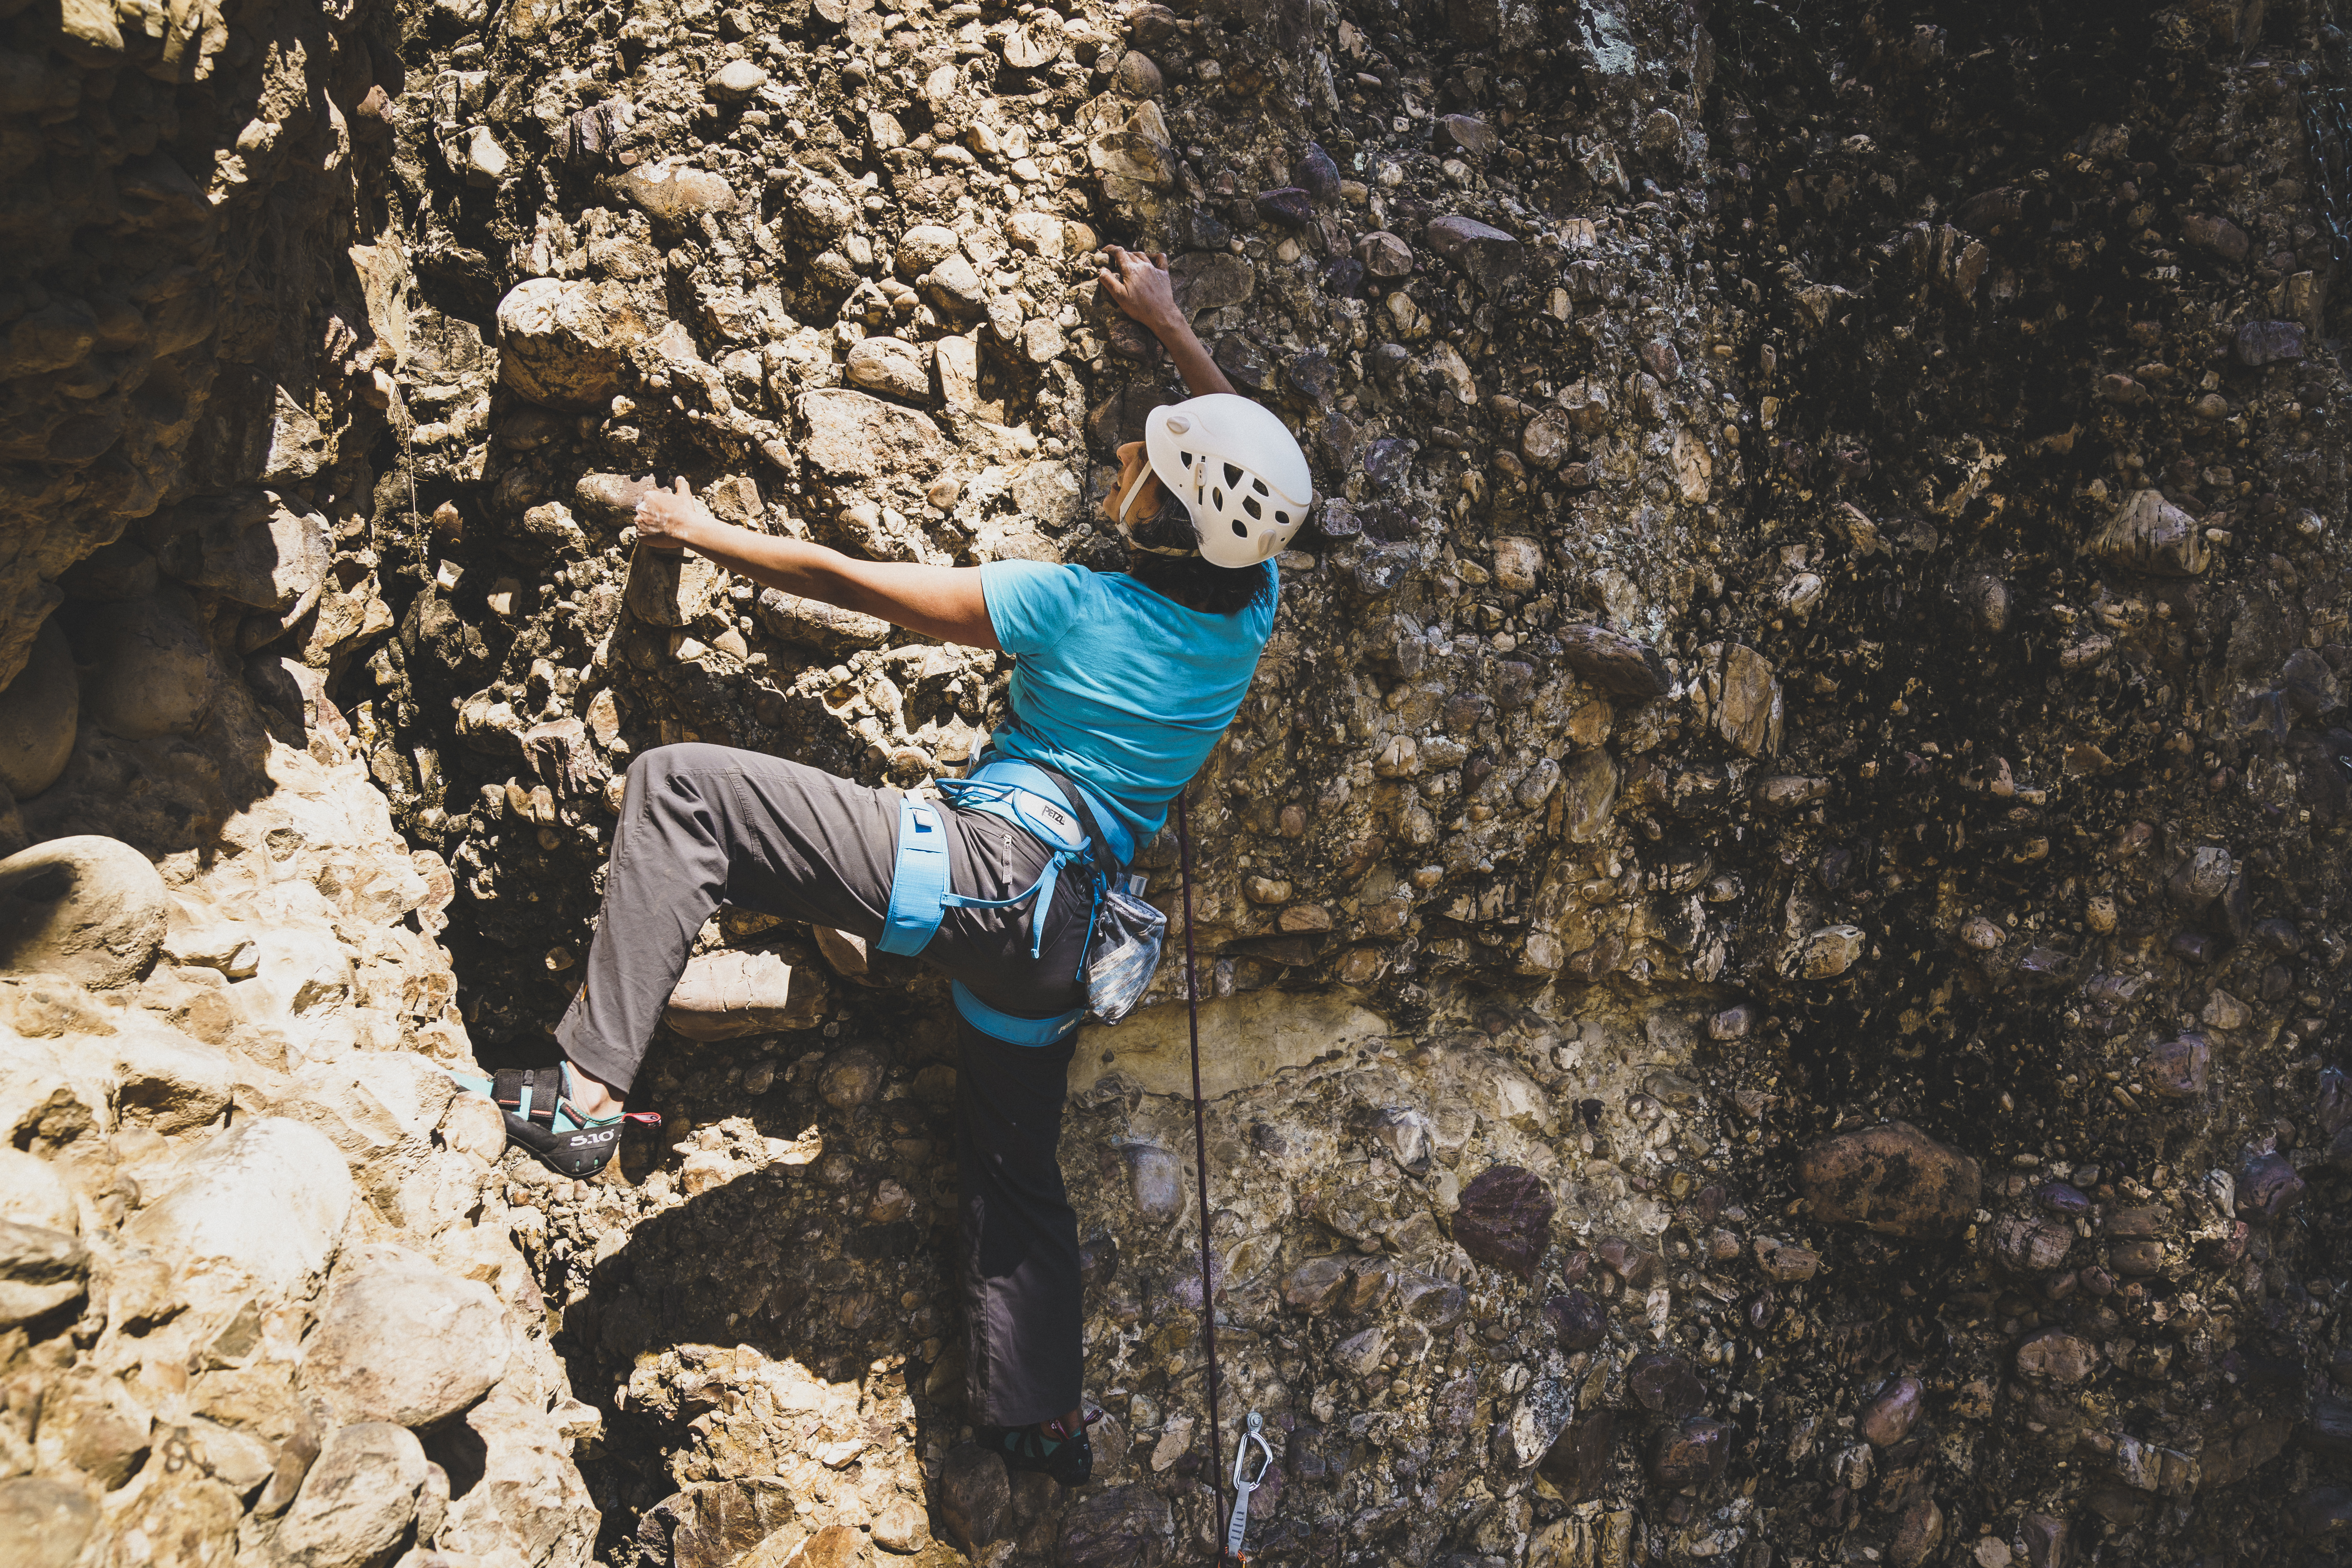 Roopal Patel leading on Maple Canyon Climbing program with Chicks Climbing